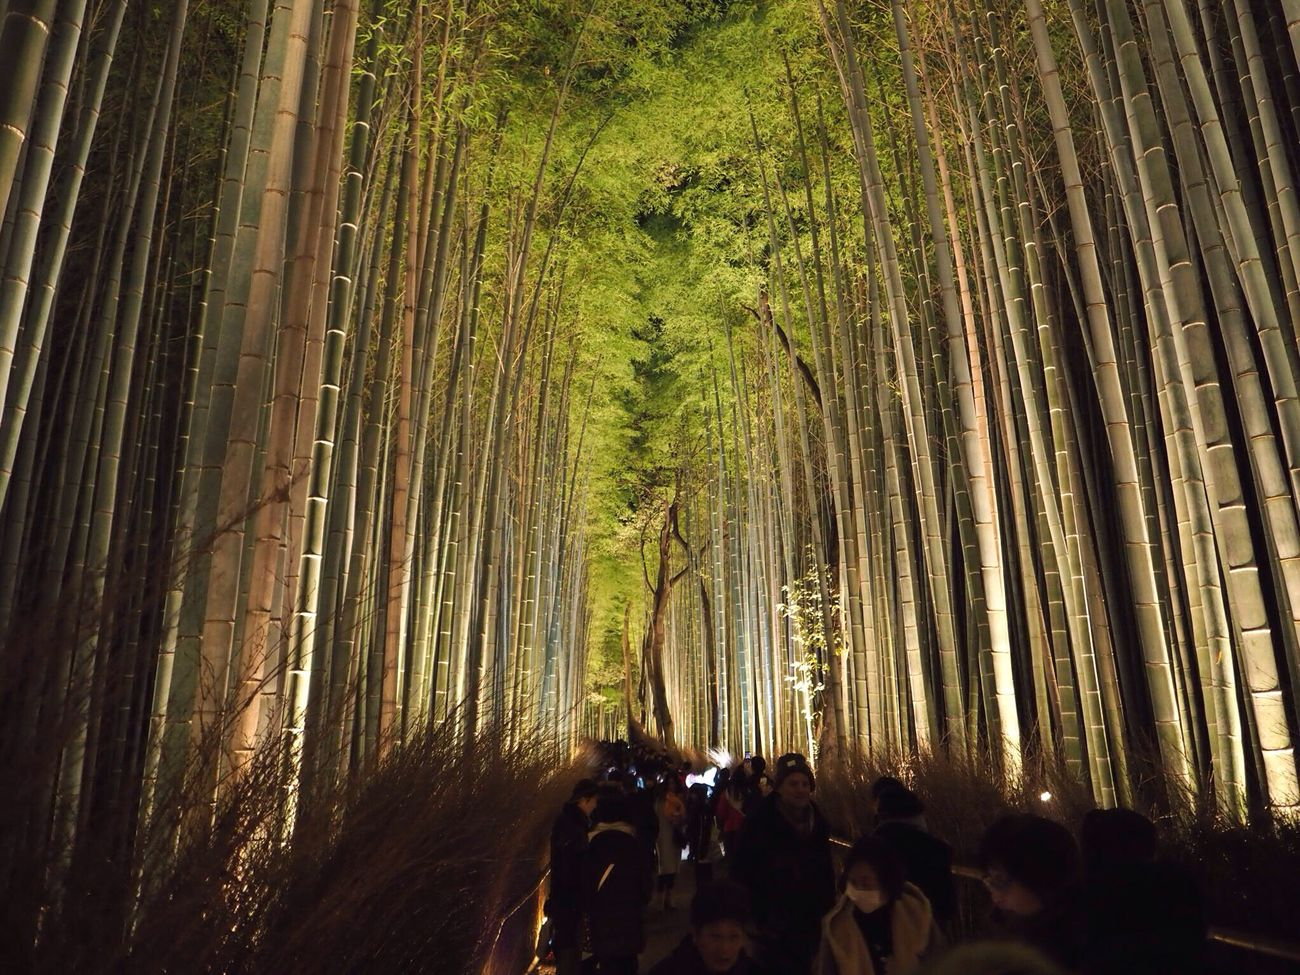 Kyoto Japan Arashiyama Chikurinnokomichi Bamboo People Lightup Night Olympus PEN-F 京都 日本 嵐山 竹林の道 ライトアップ 夜 人々 竹